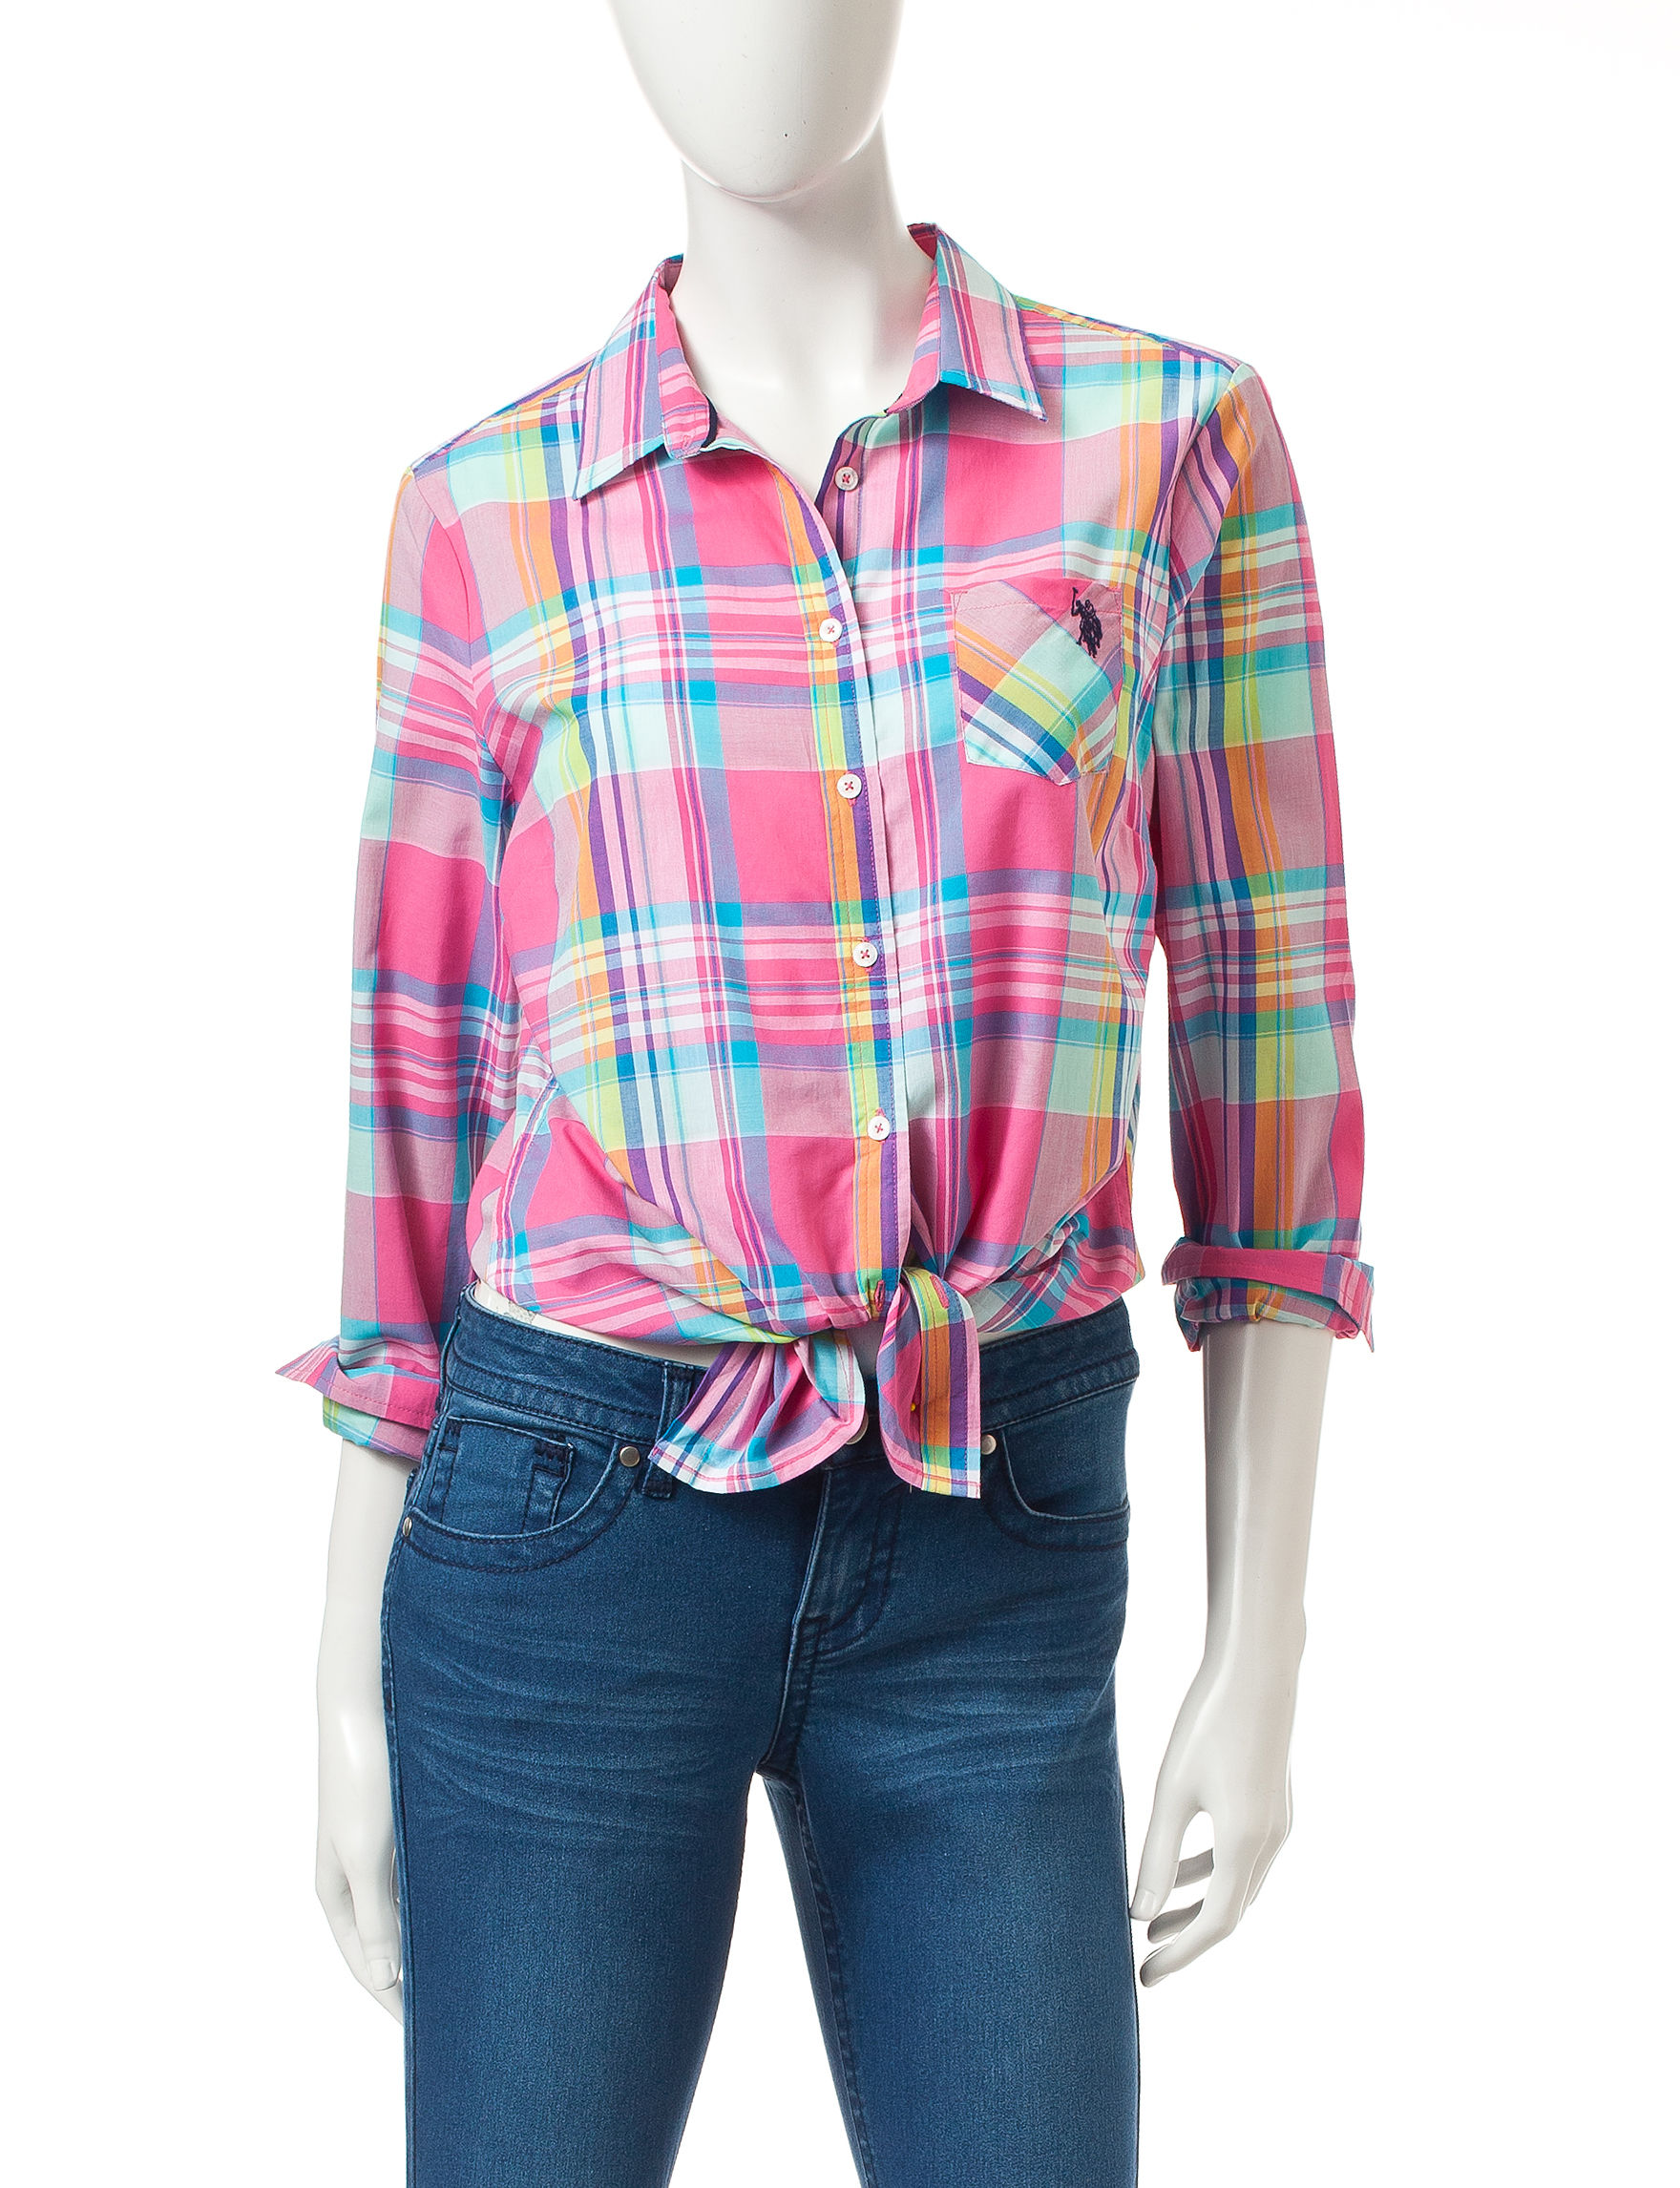 U.S. Polo Assn. Medium Pink Shirts & Blouses